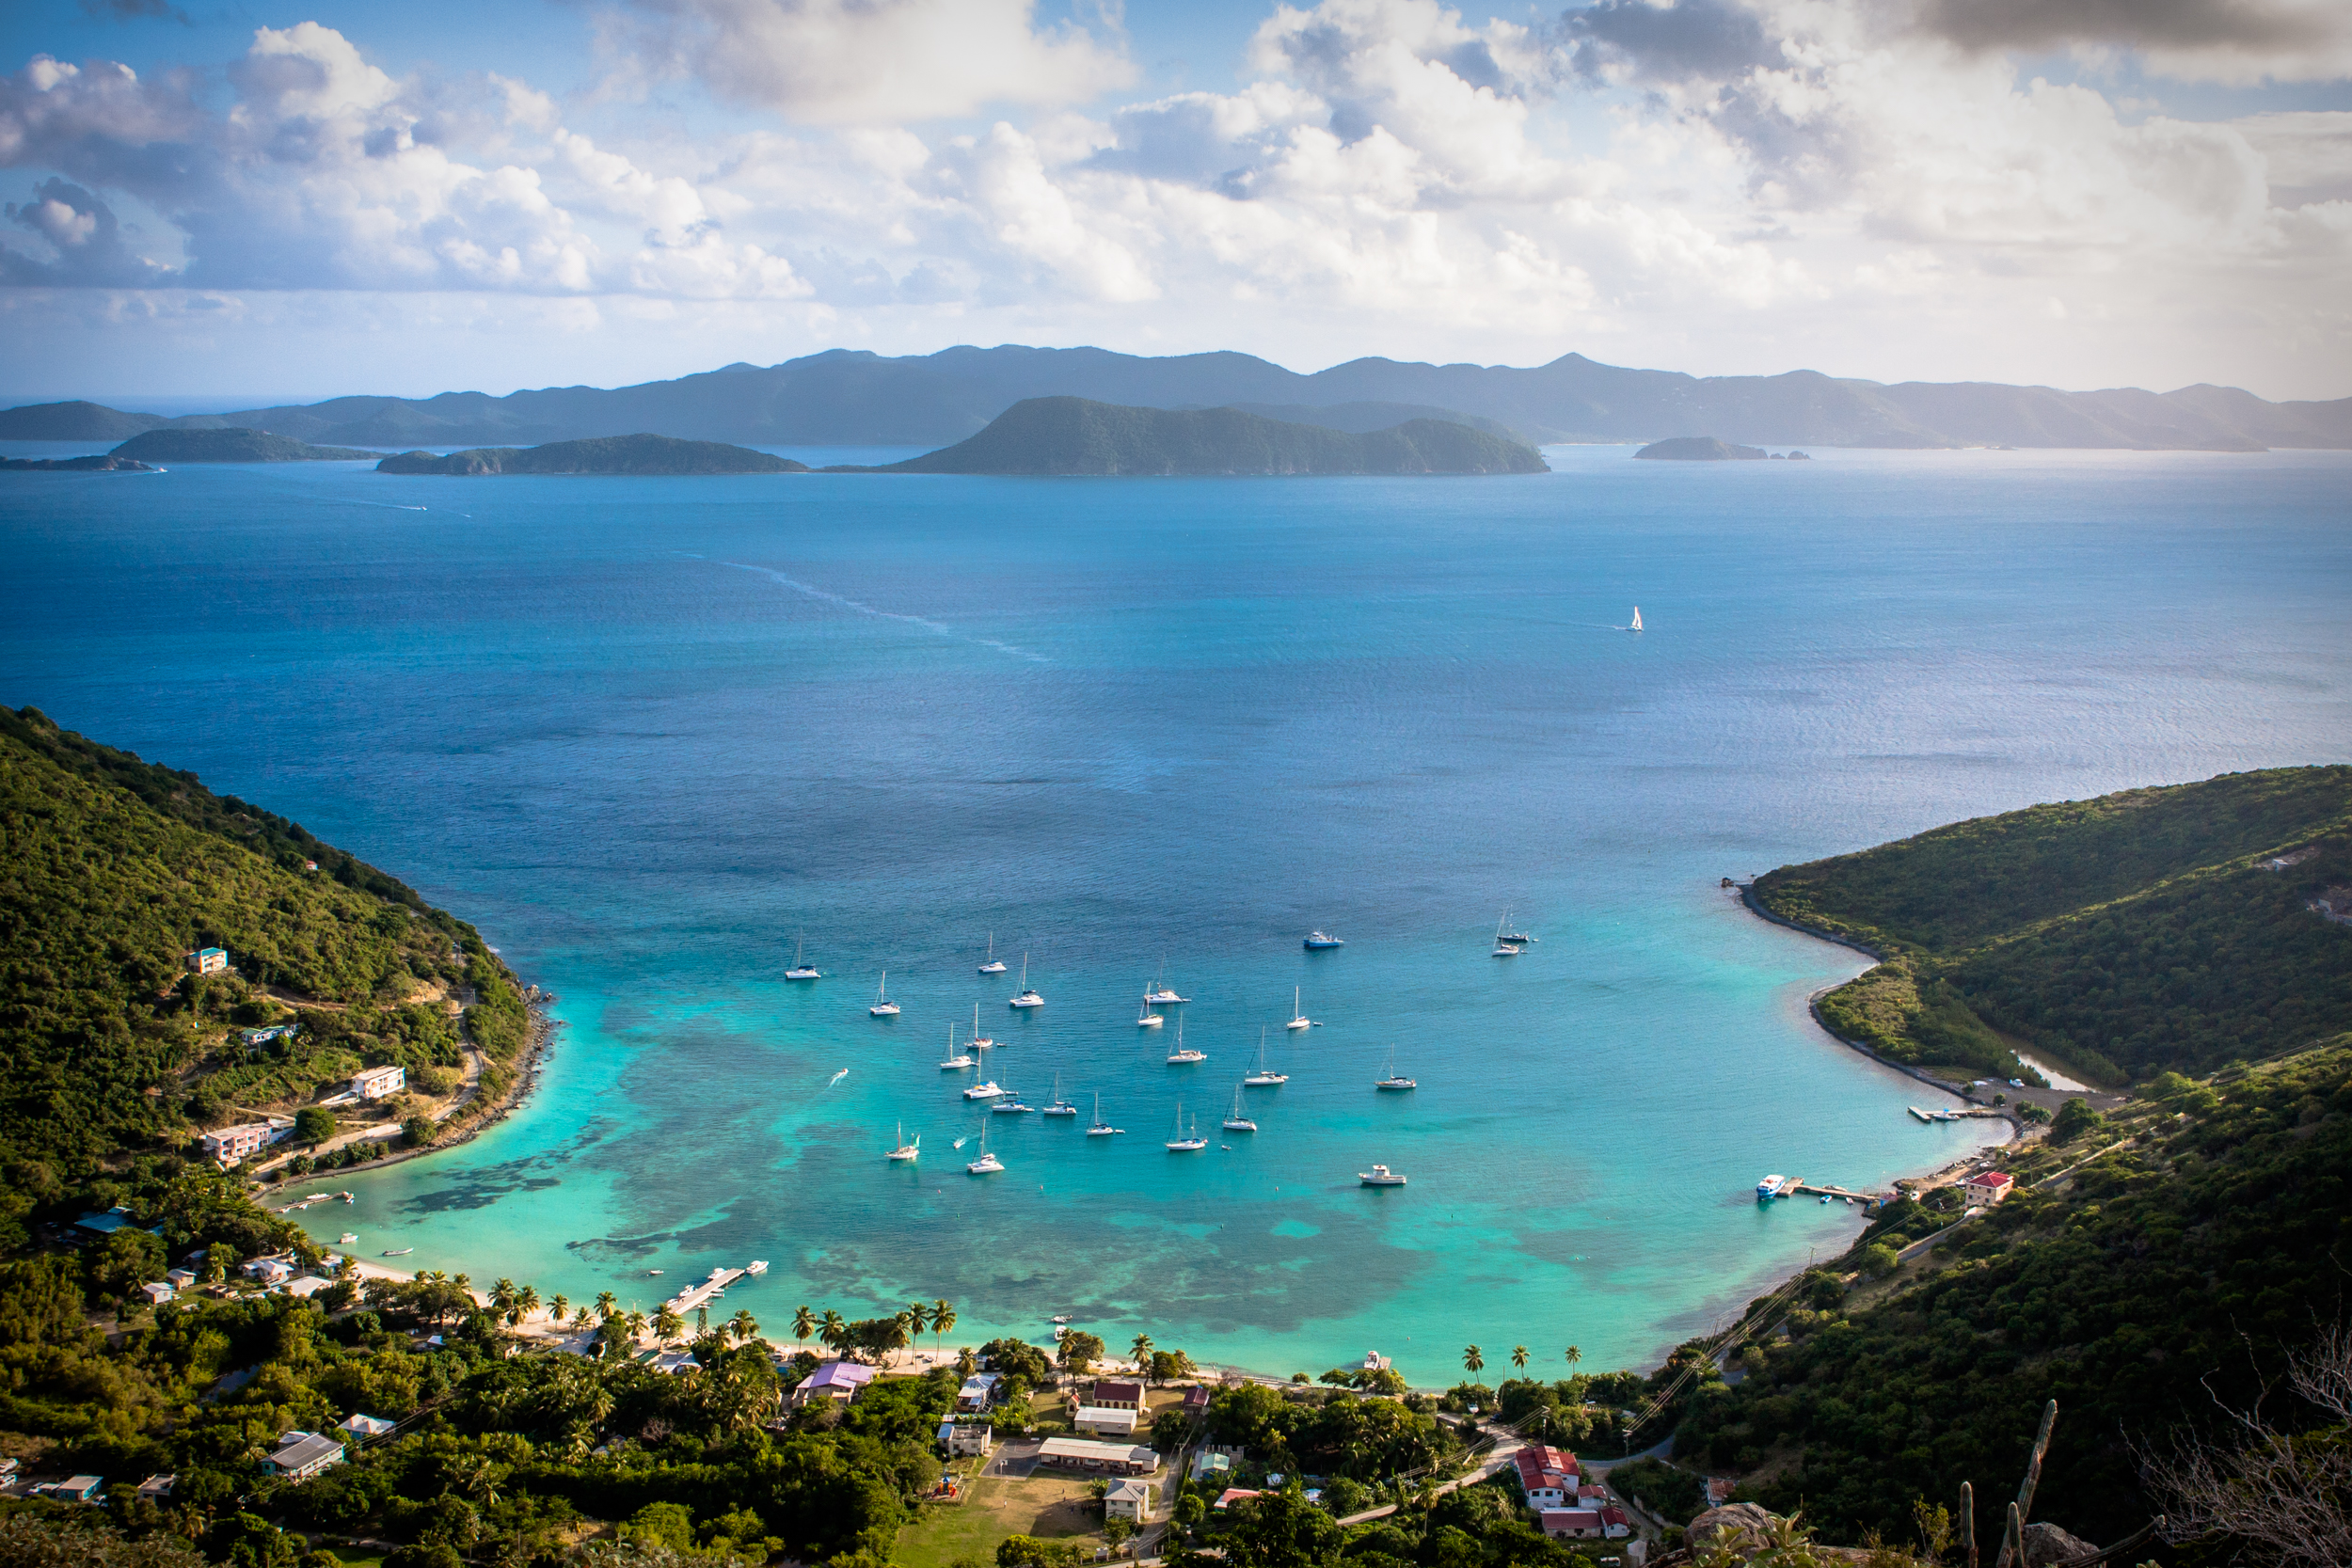 Aerial view of Great Harbor on Jost Van Dyke with sailboats, islands and clear Caribbean water.